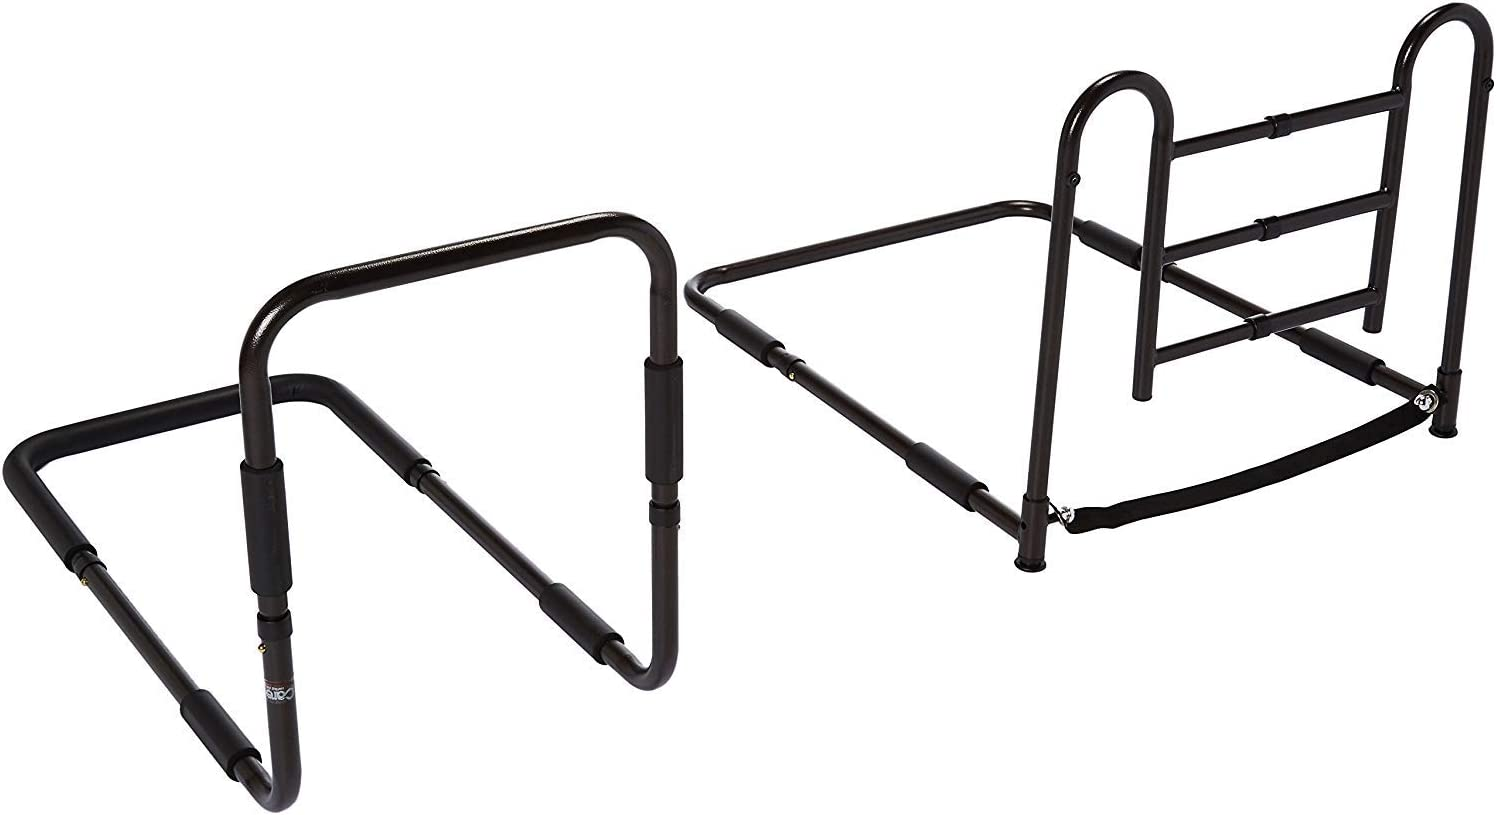 Carex Health Brands Easy-Up Bed Rails for Elderly - Adult Bed Hand Rails - Bed Safety Rails for Seniors, Black (FGP56900): Health & Personal Care